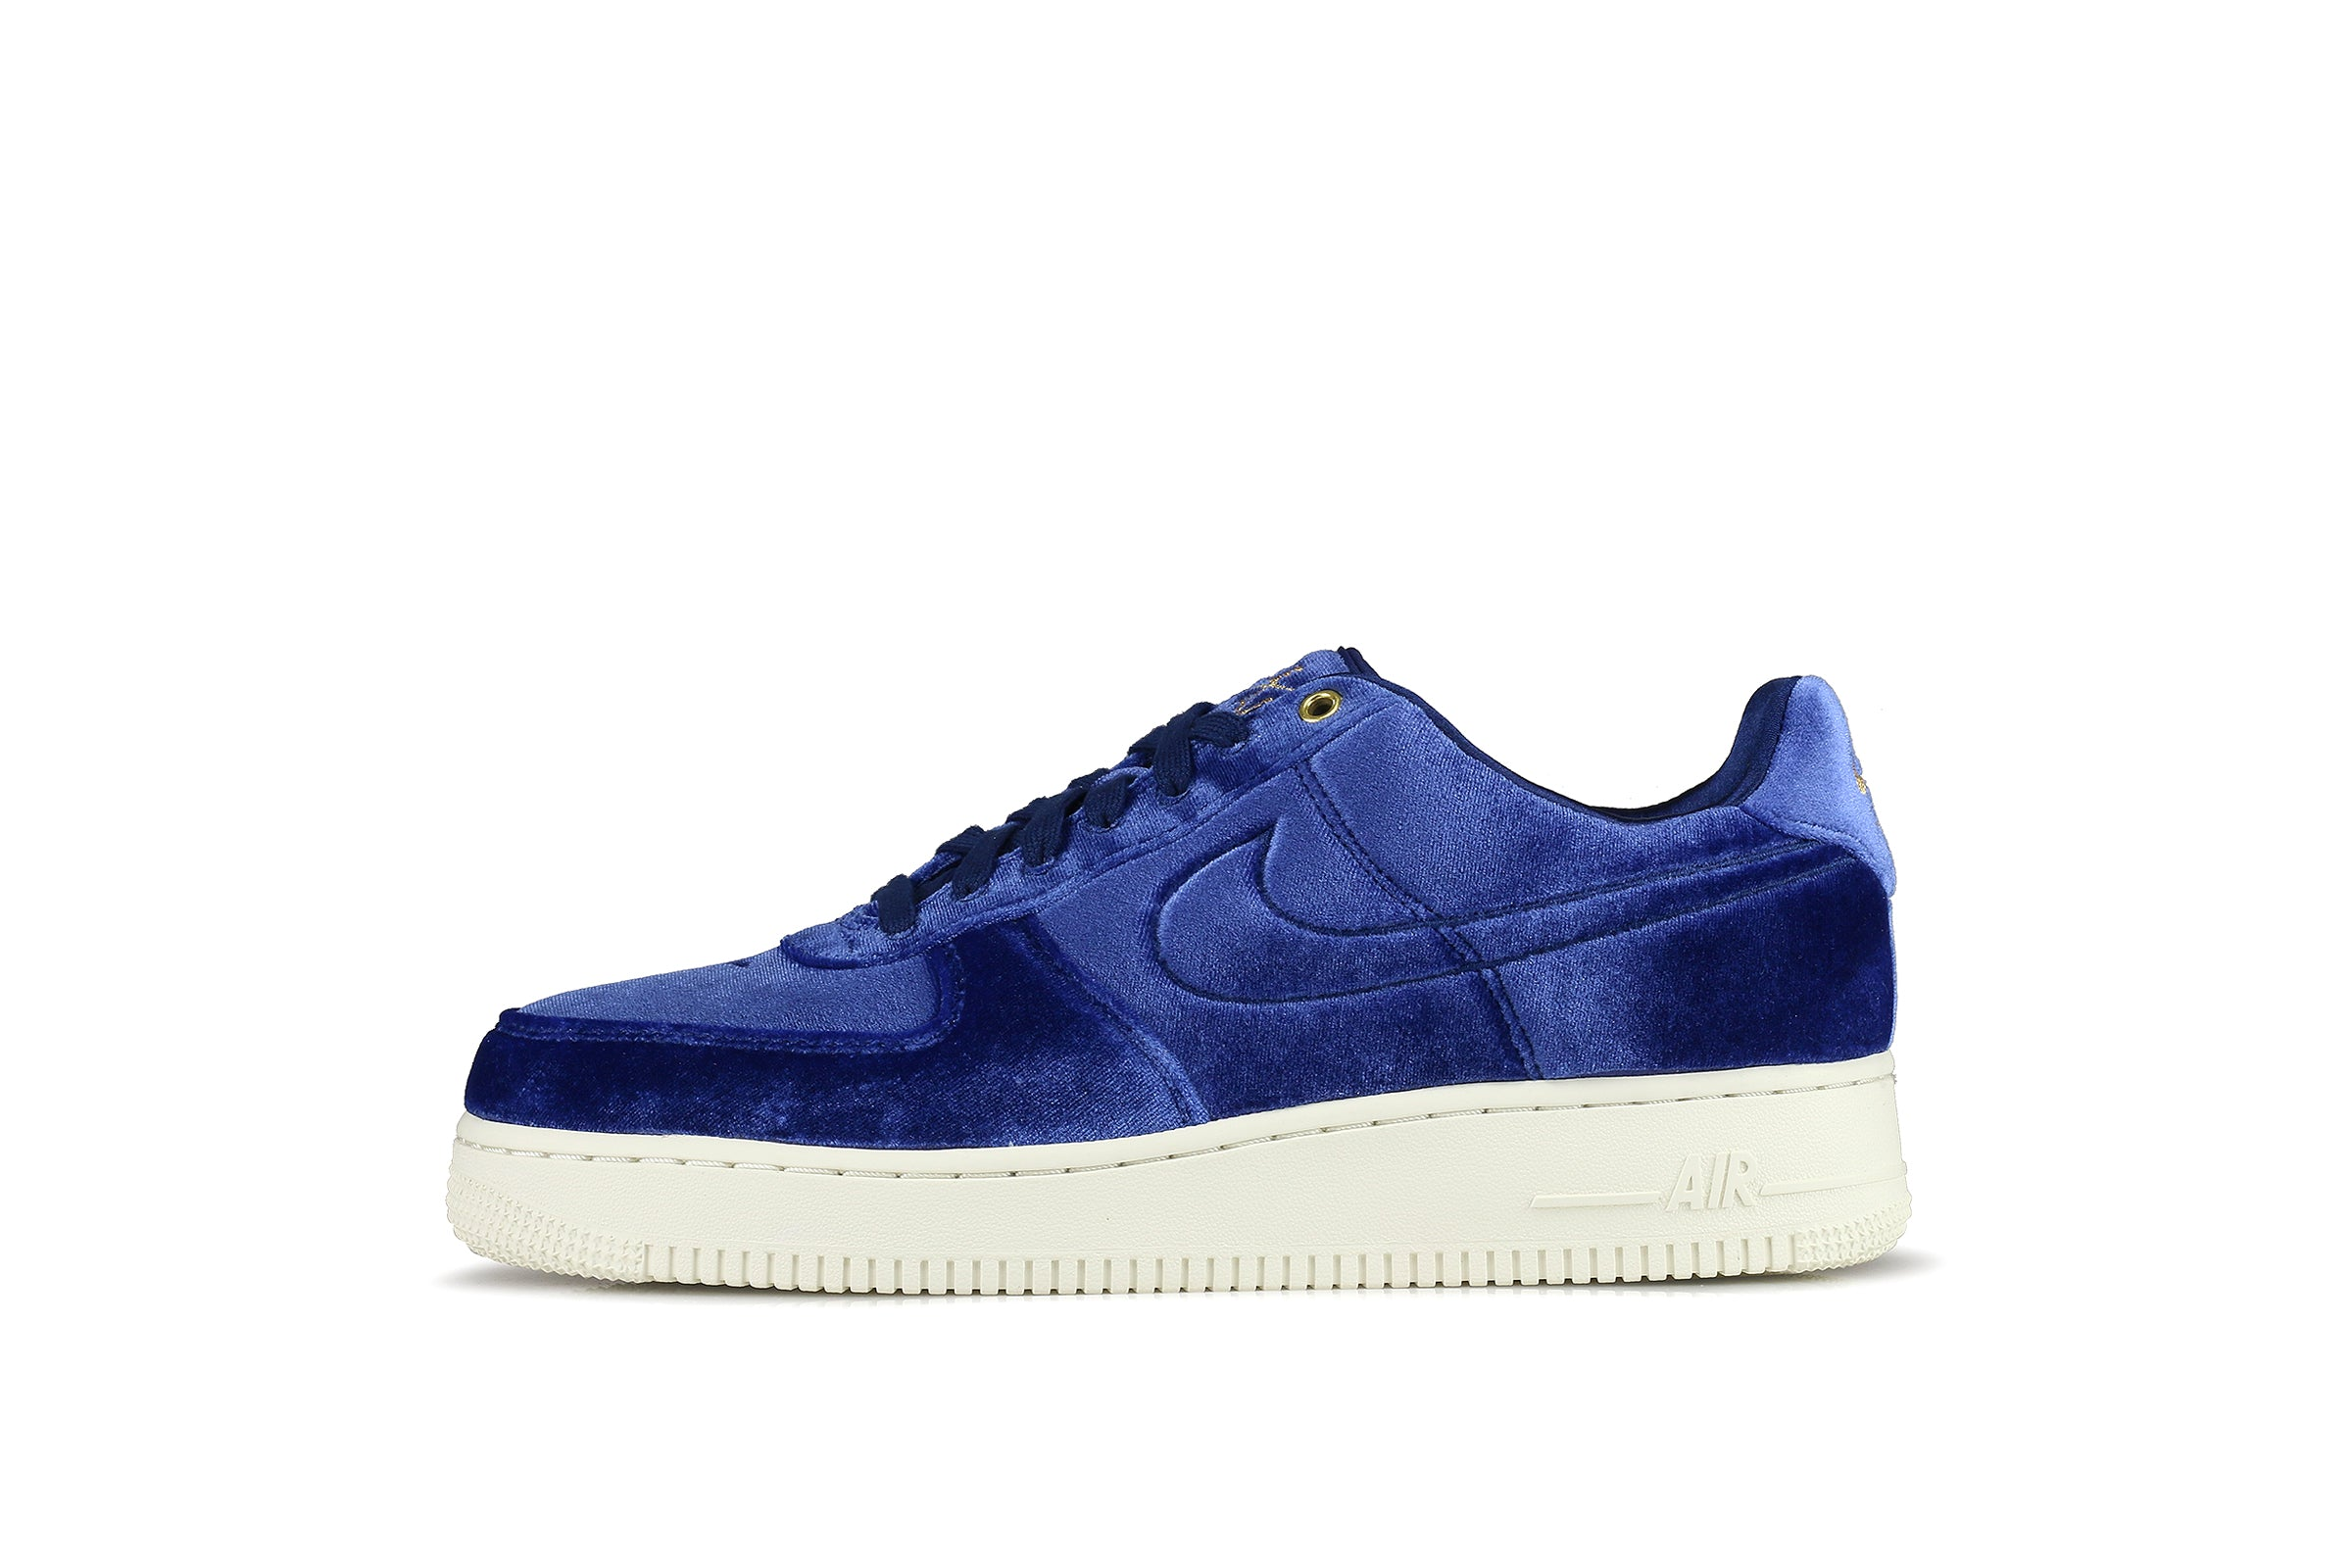 eaa20e208d Nike Air Force 1 '07 Premium 3